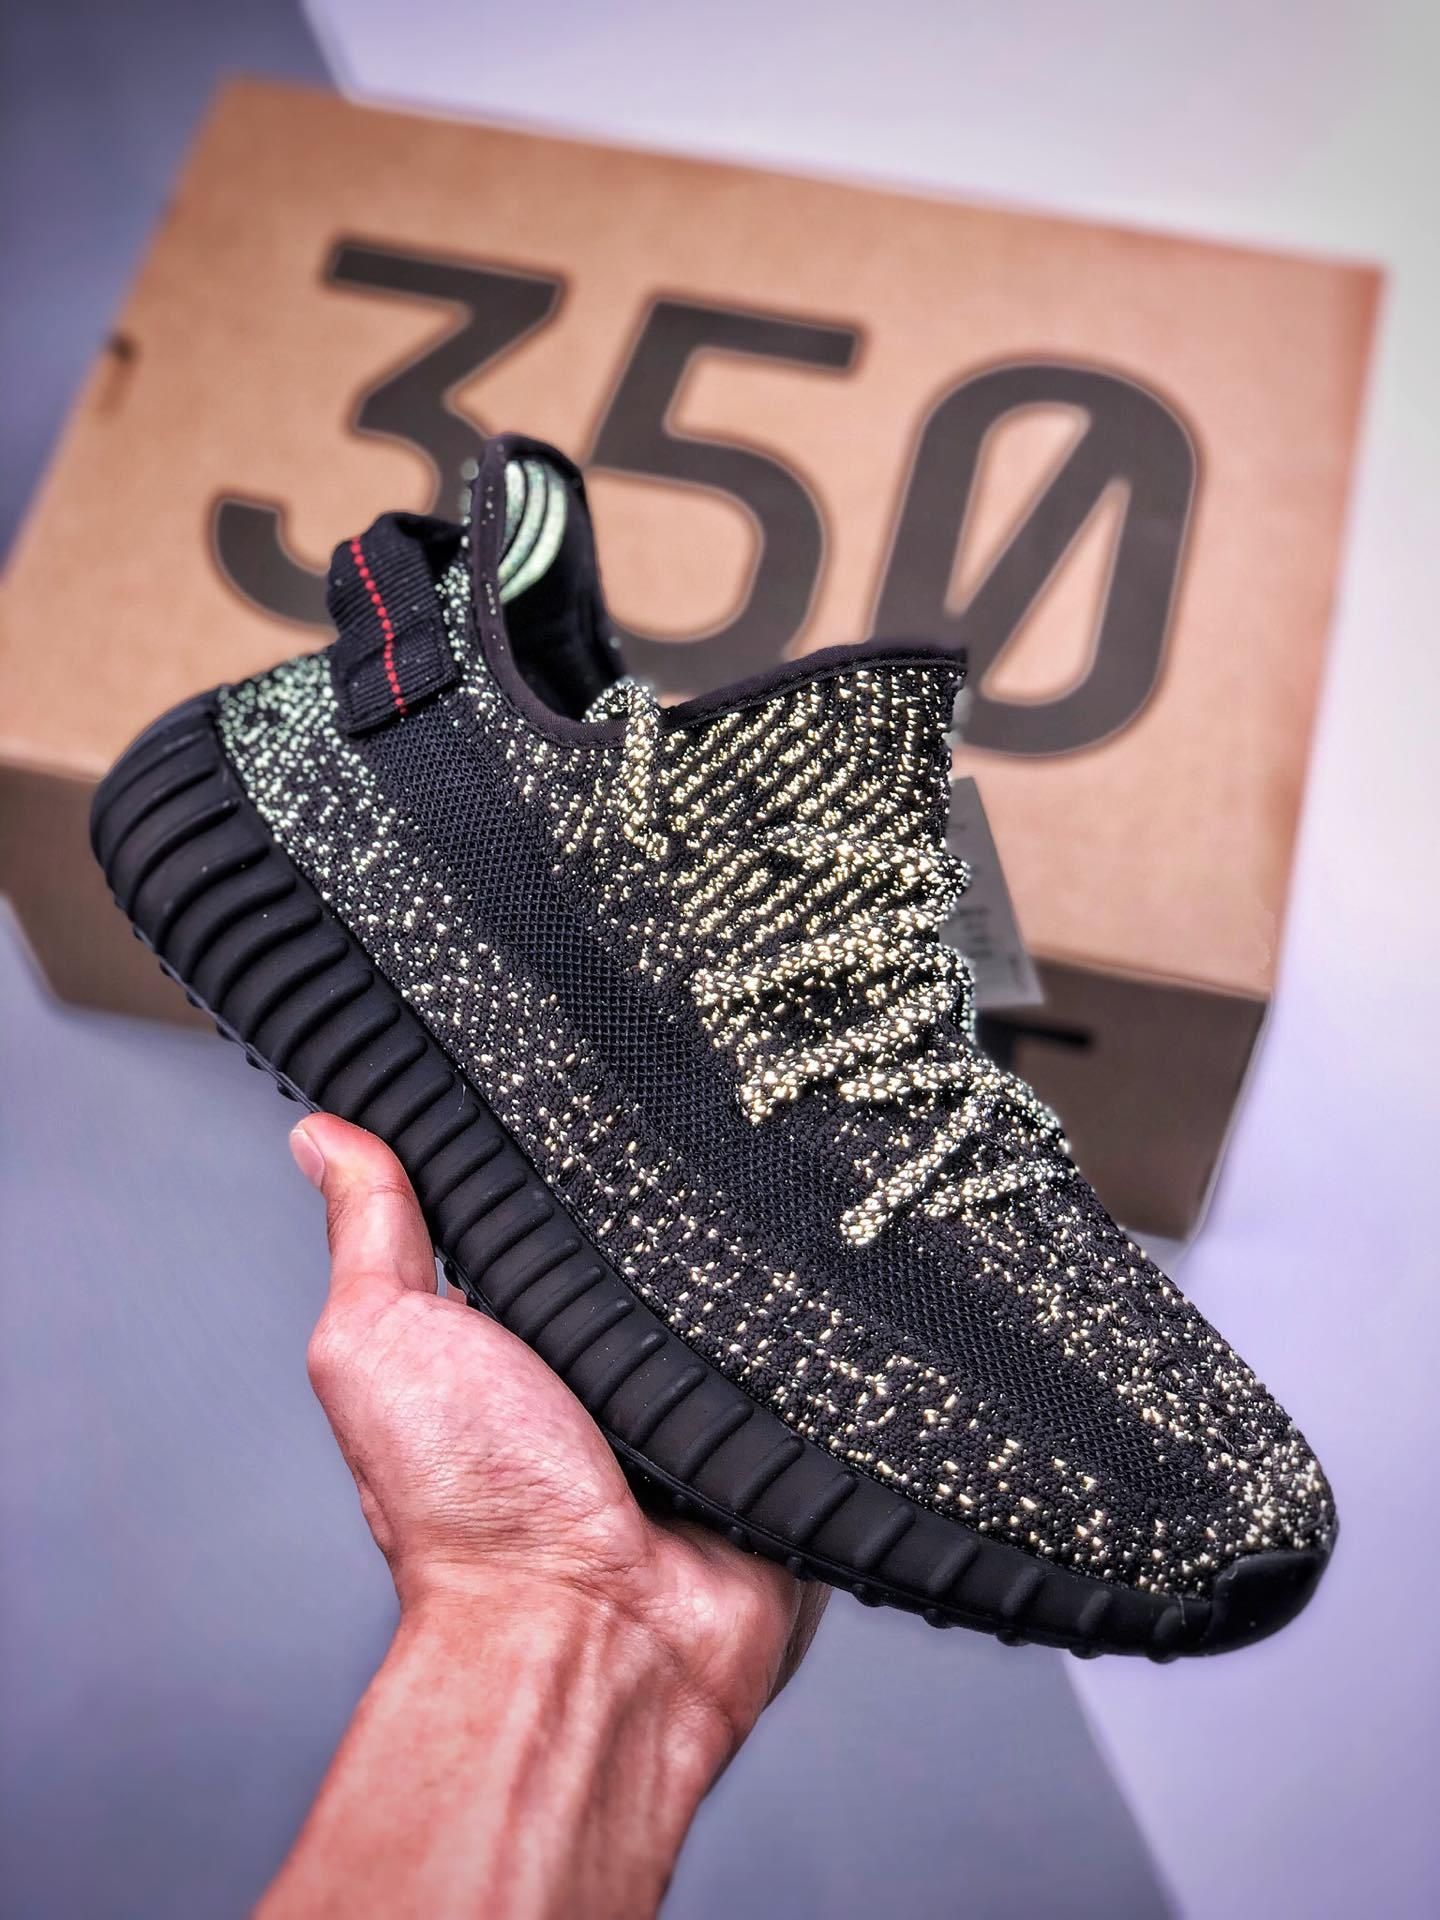 Buy Cheap Adidas Yeezy 350 V2 Static EF2567 Boost Fake Shoes